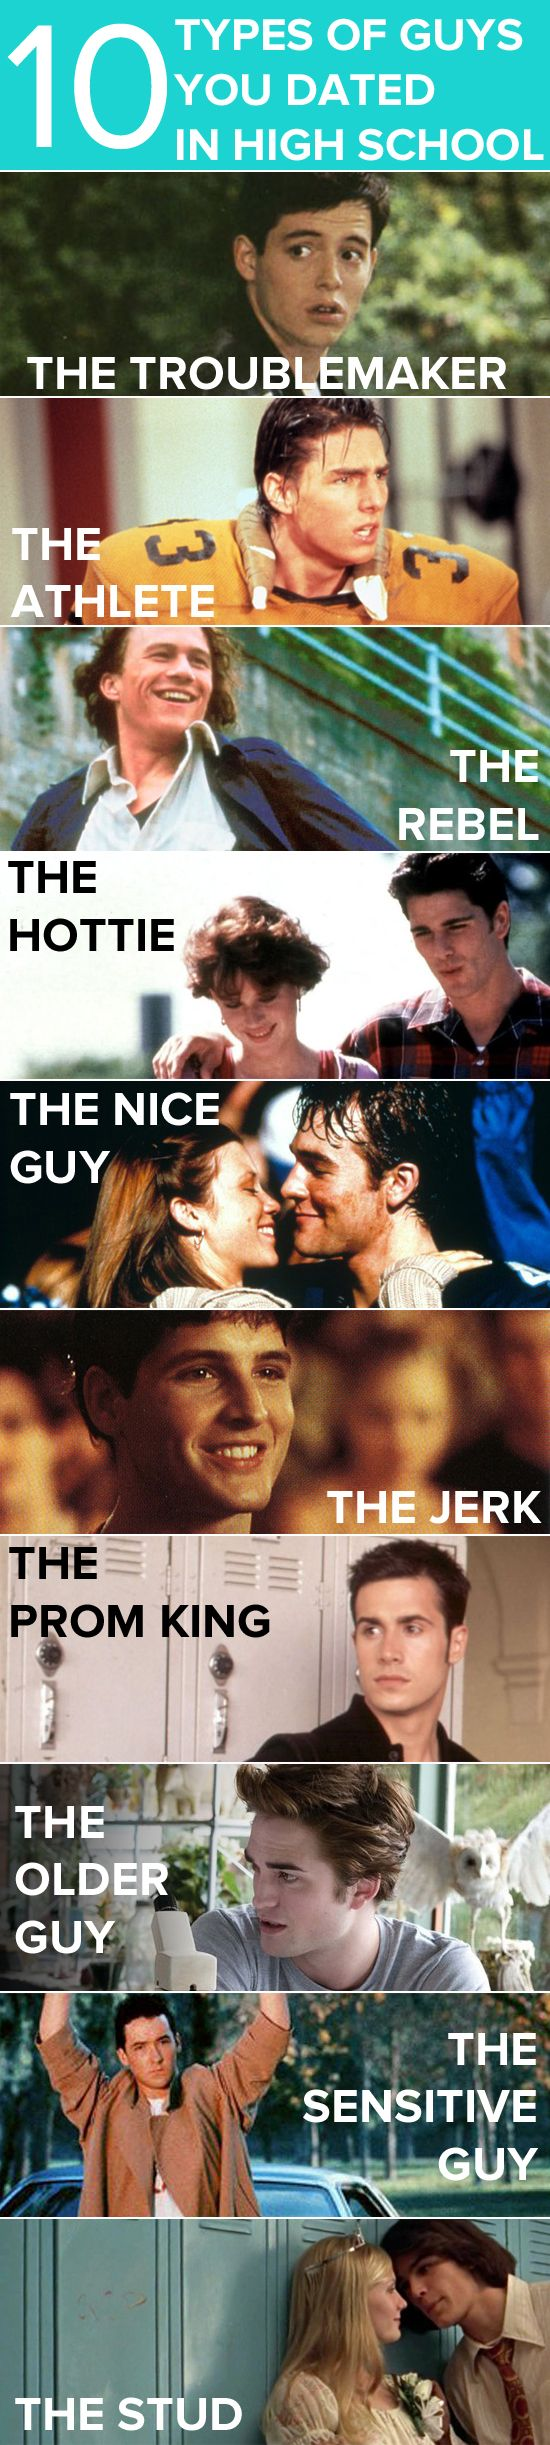 10 types of guys you either dated or crushed on in high school (as illustrated by movie boyfriends!)